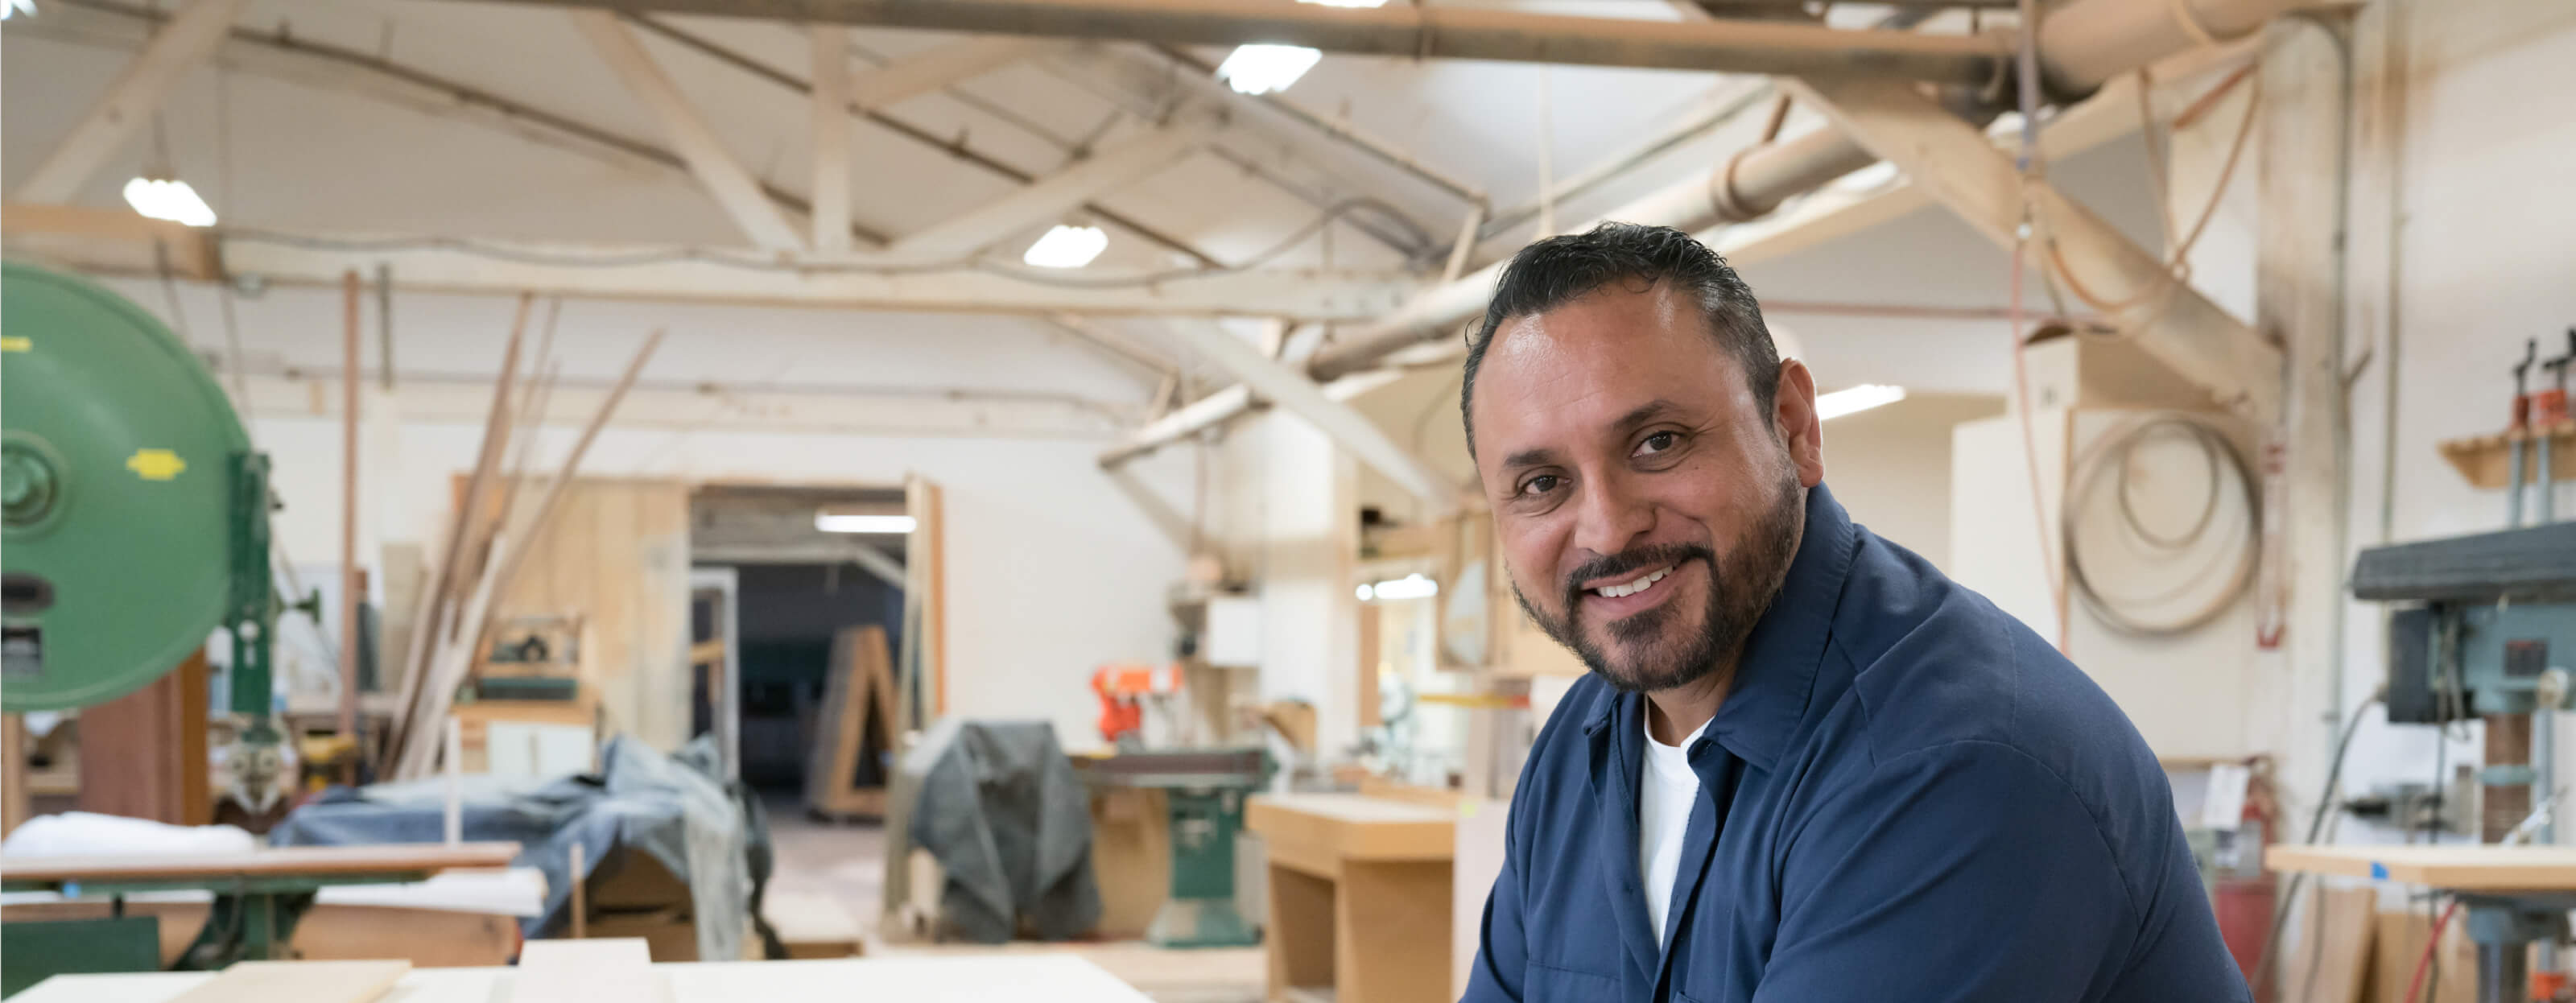 A smiling man sitting in a woodshop